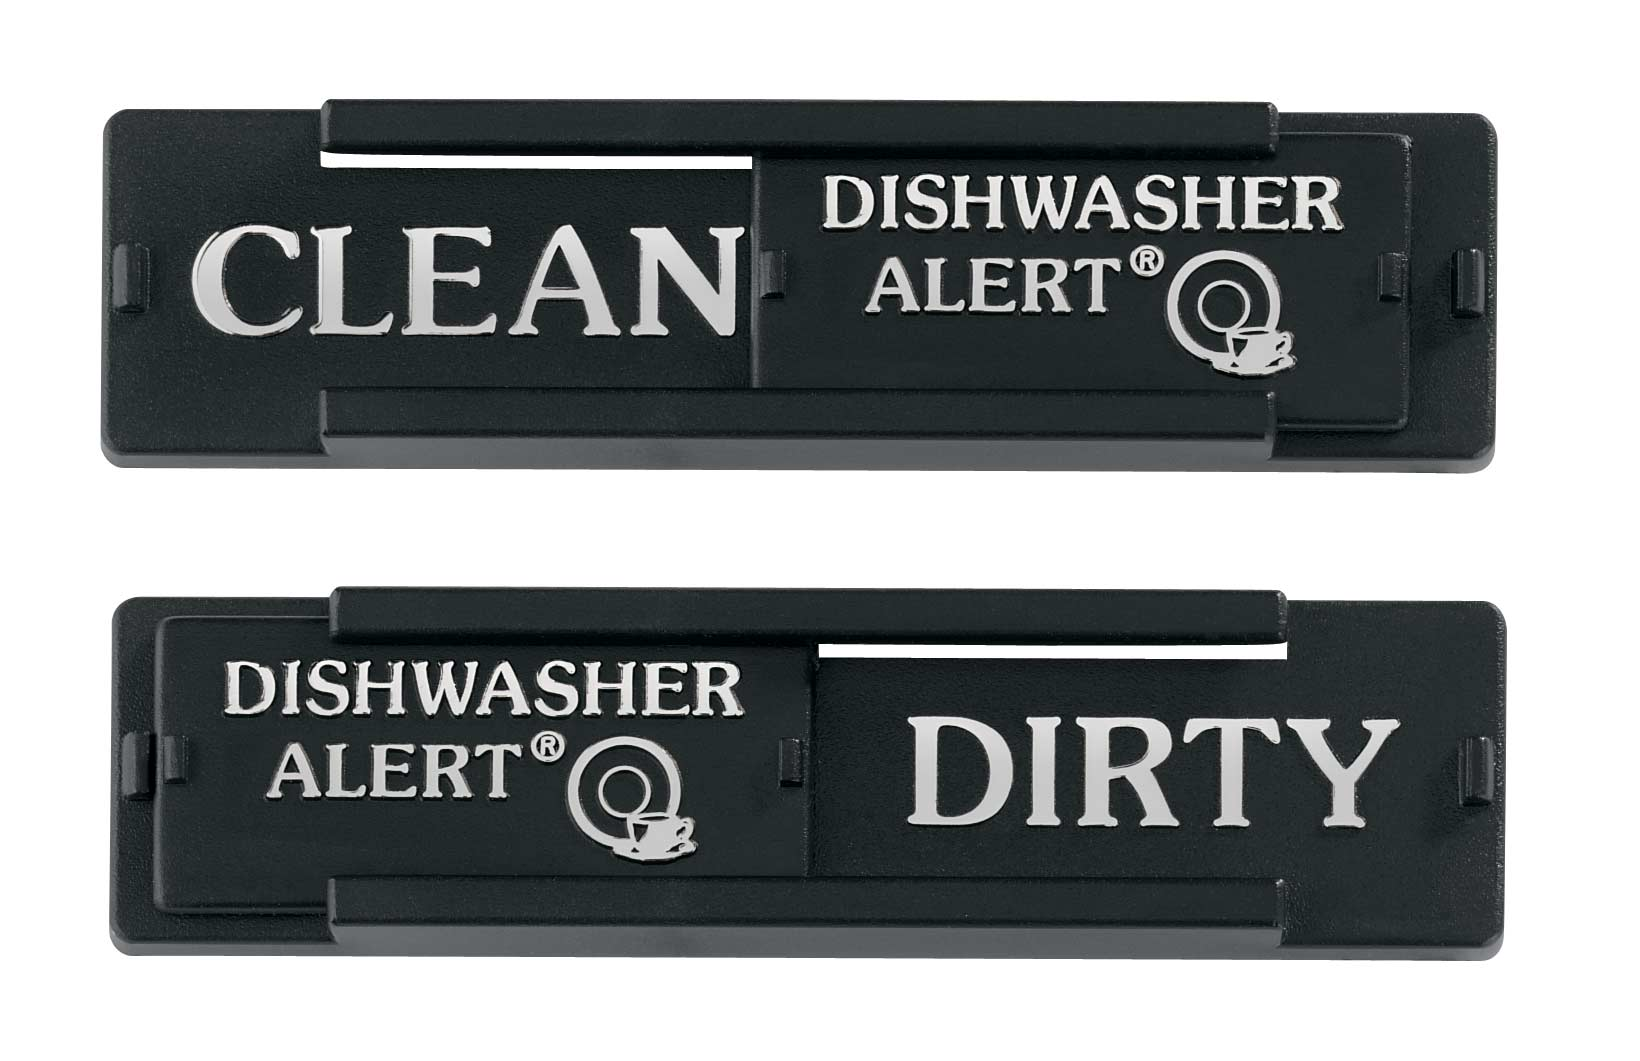 Dishwasher Reminder Are the dishes in your dishwasher dirty or clean? Sure, you could open it up, bend down, and look. But this dishwasher reminder sign is handier. Just stick this dishwasher reminder on your dishwasher, and slide it between Clean and Dirty as needed. Not electronic - you just slide it back and forth. Plastic, 4 long x 1 wide.